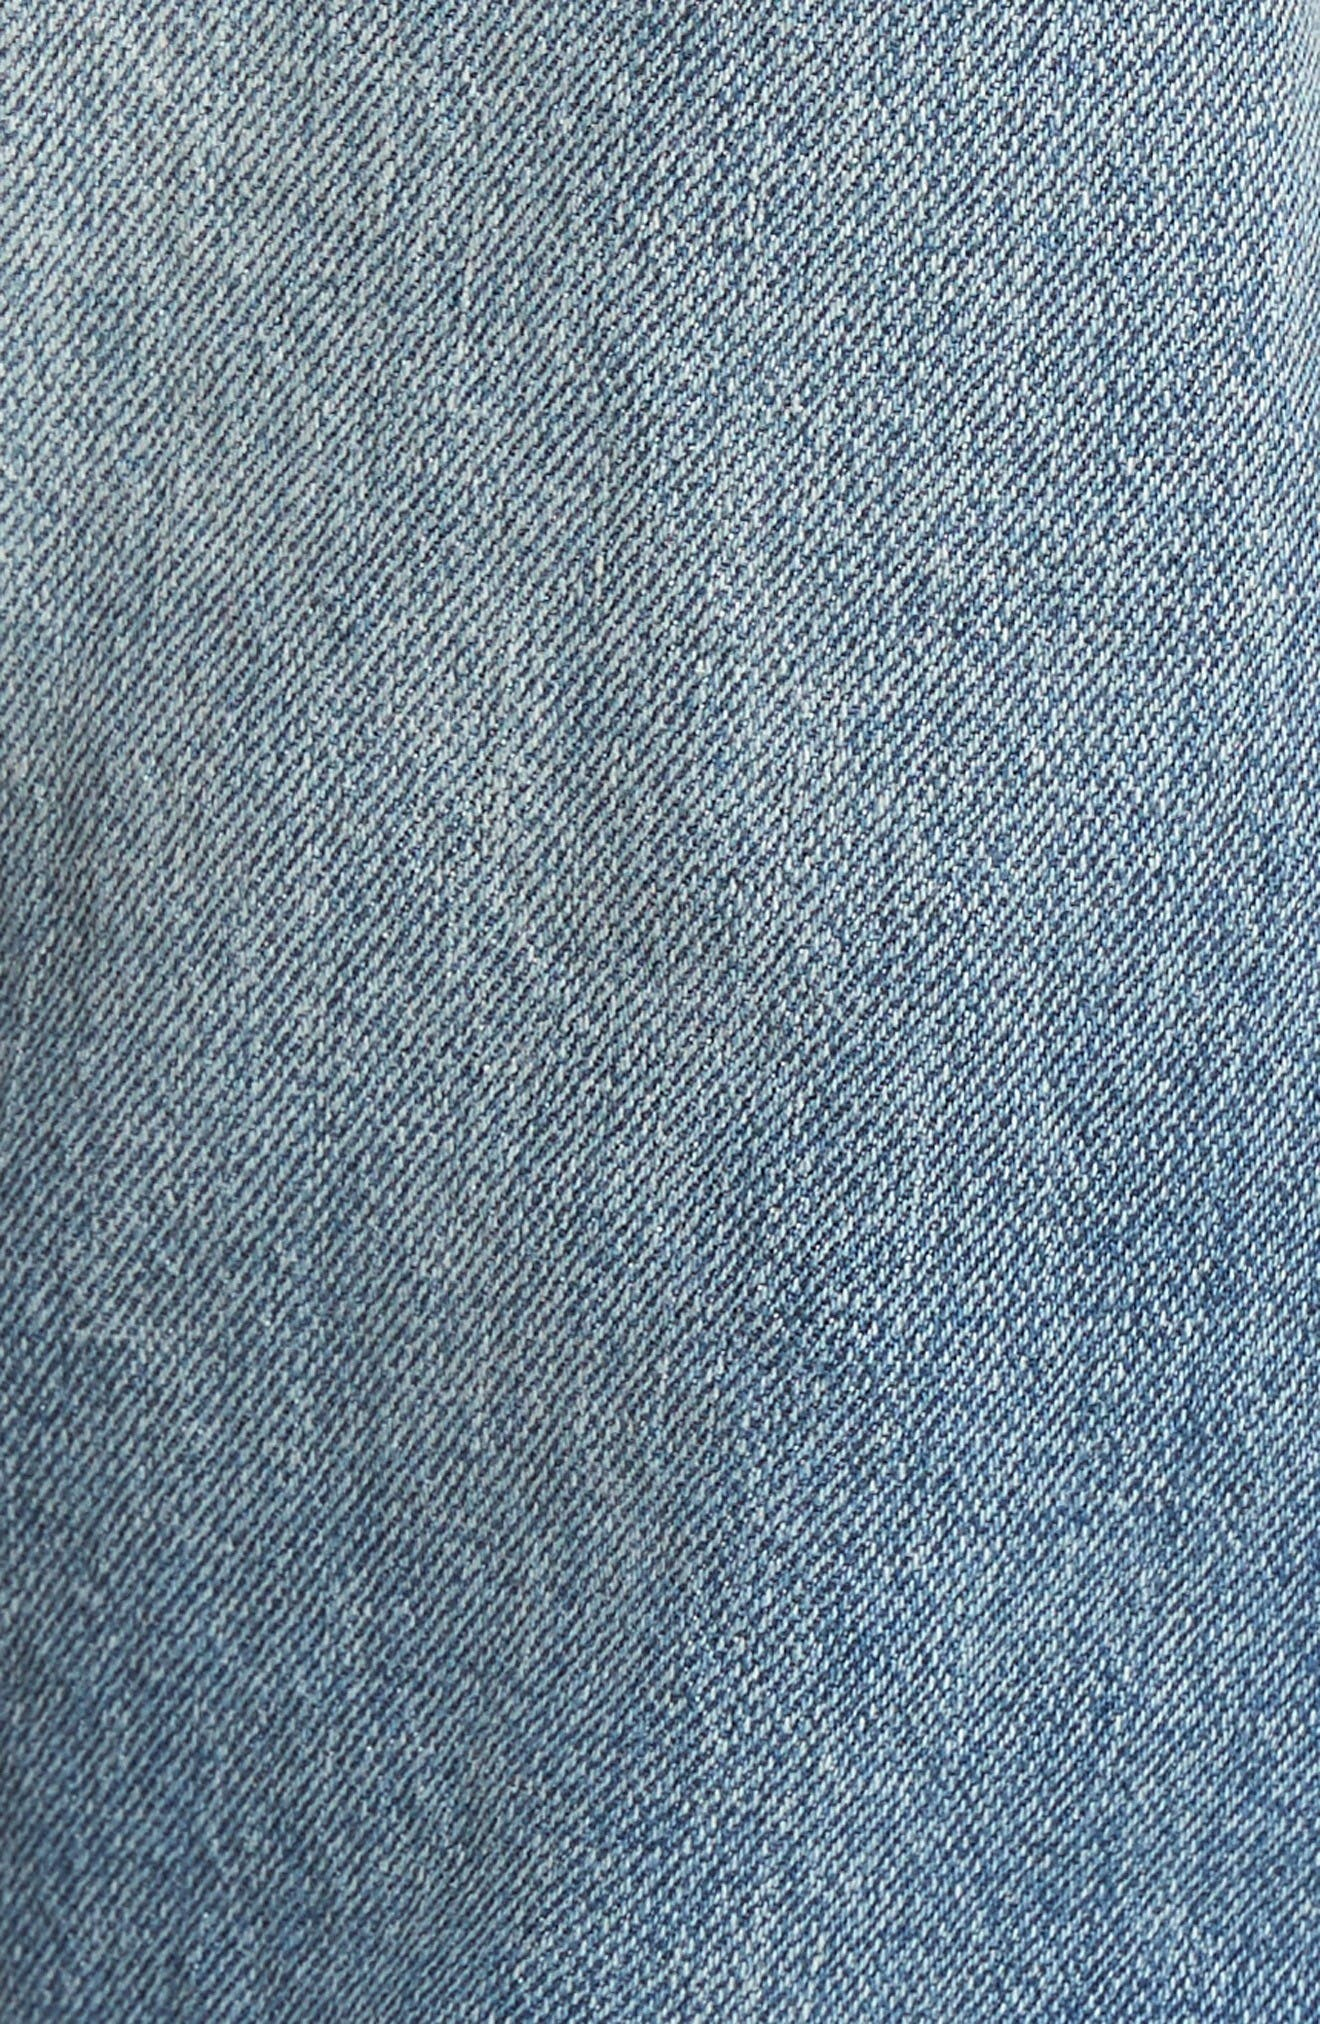 Alternate Image 5  - Levi's® 512™ Slouchy Skinny Fit Jeans (Jukebox)